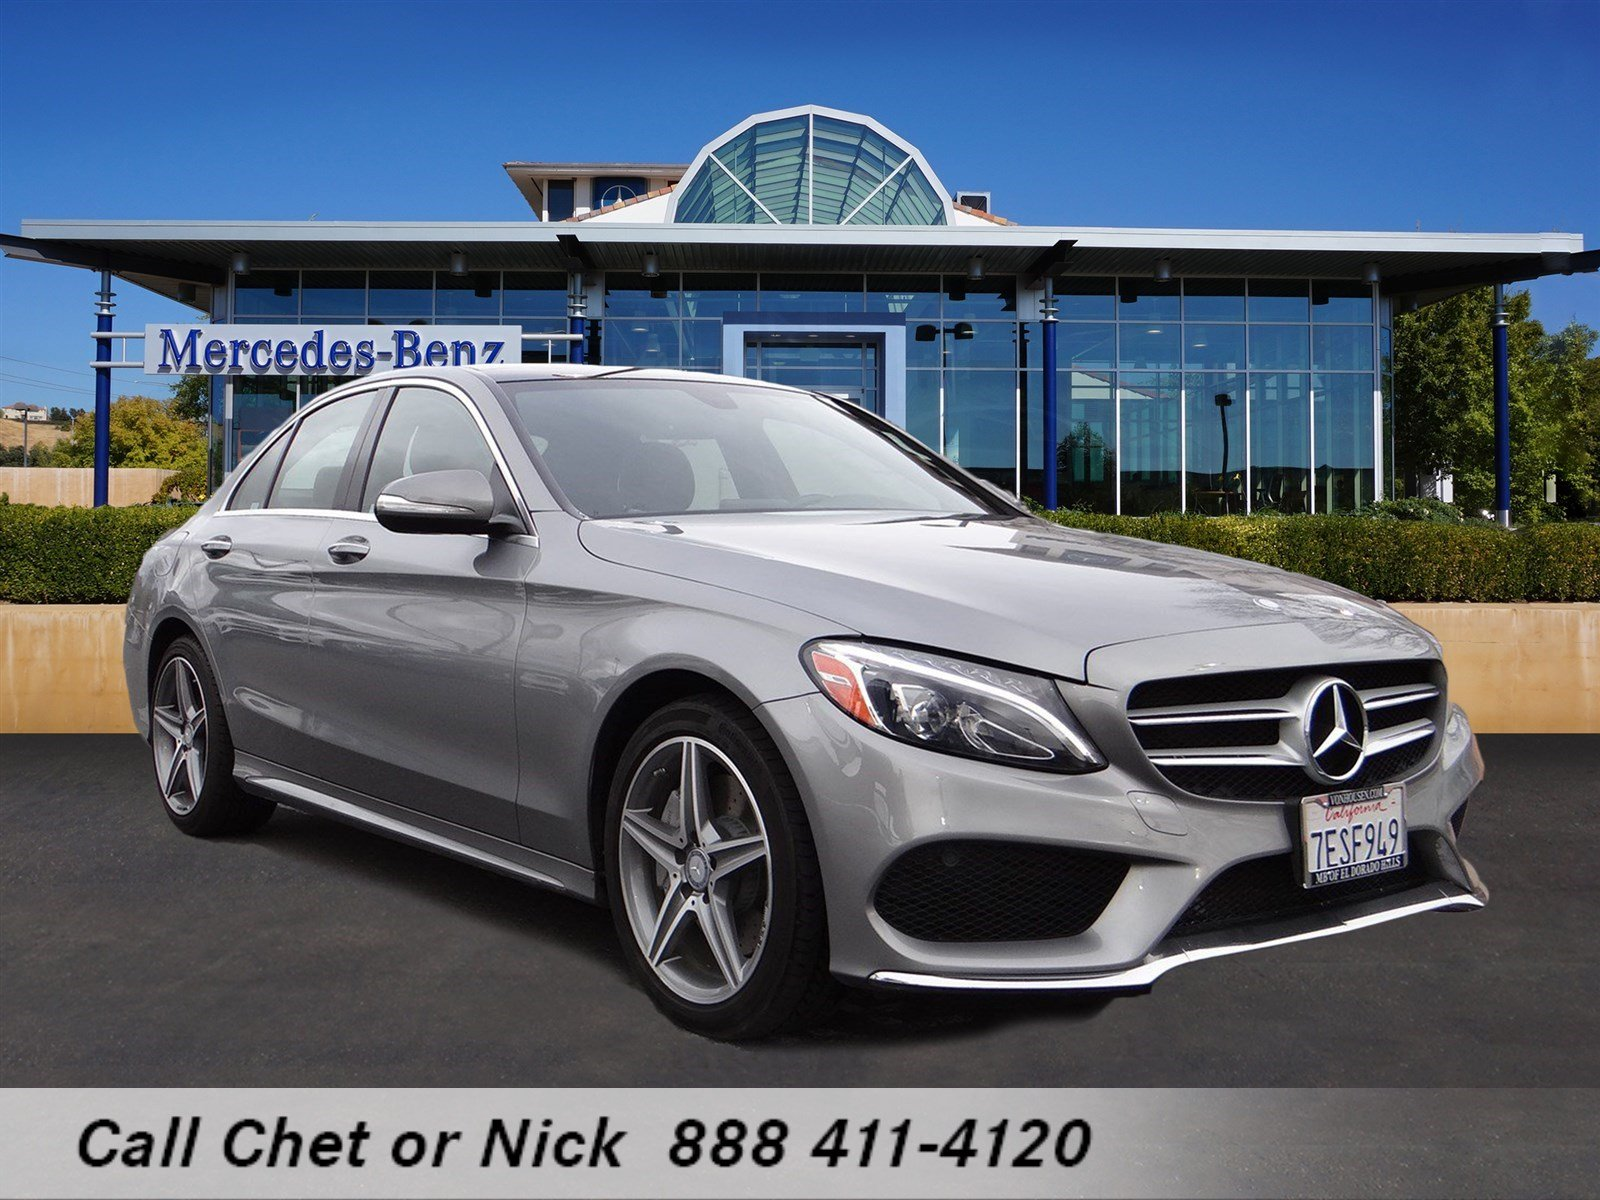 Certified pre owned 2015 mercedes benz c class c300w4 4dr for Mercedes benz c class pre owned